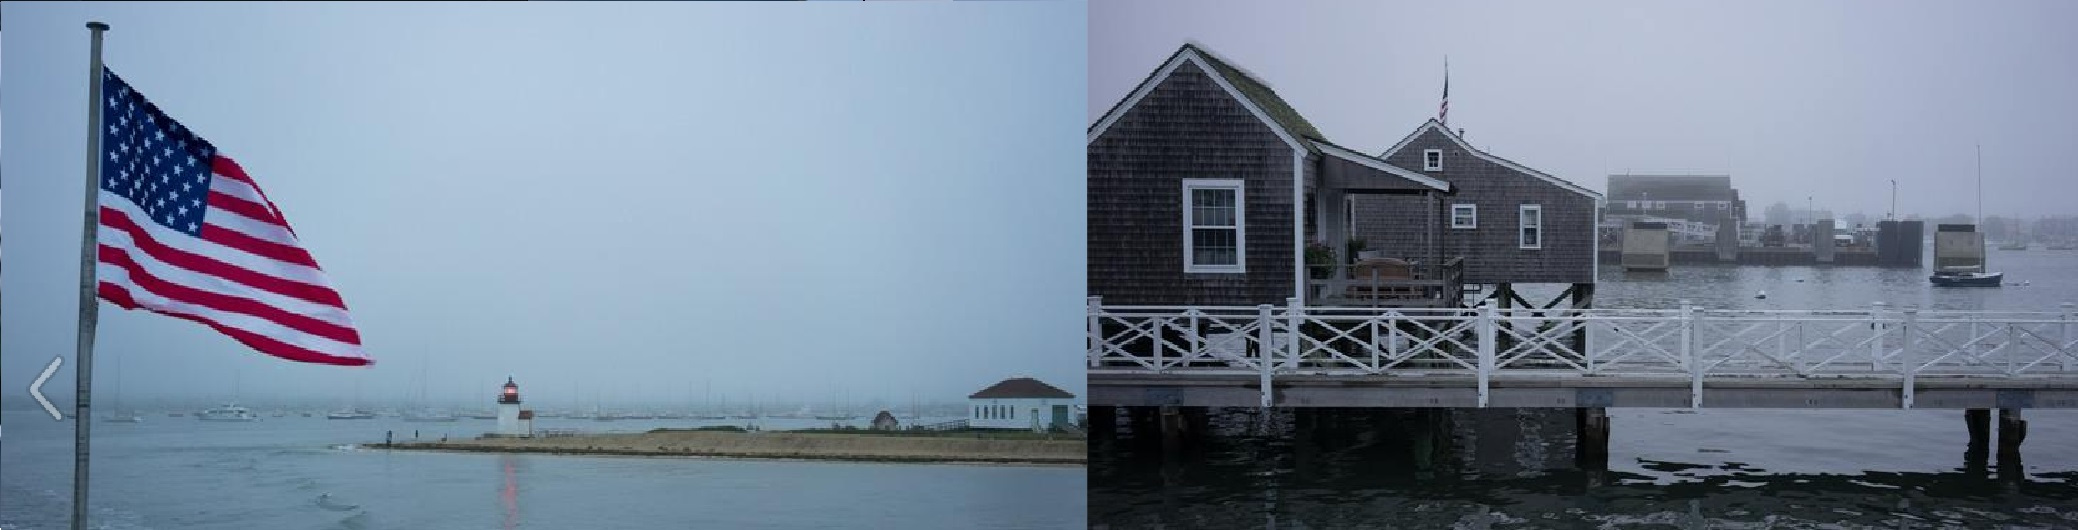 American flag in foreground with lighthouse, beach and Nantucket shoreline in background, dock in Nantucket on foggy day